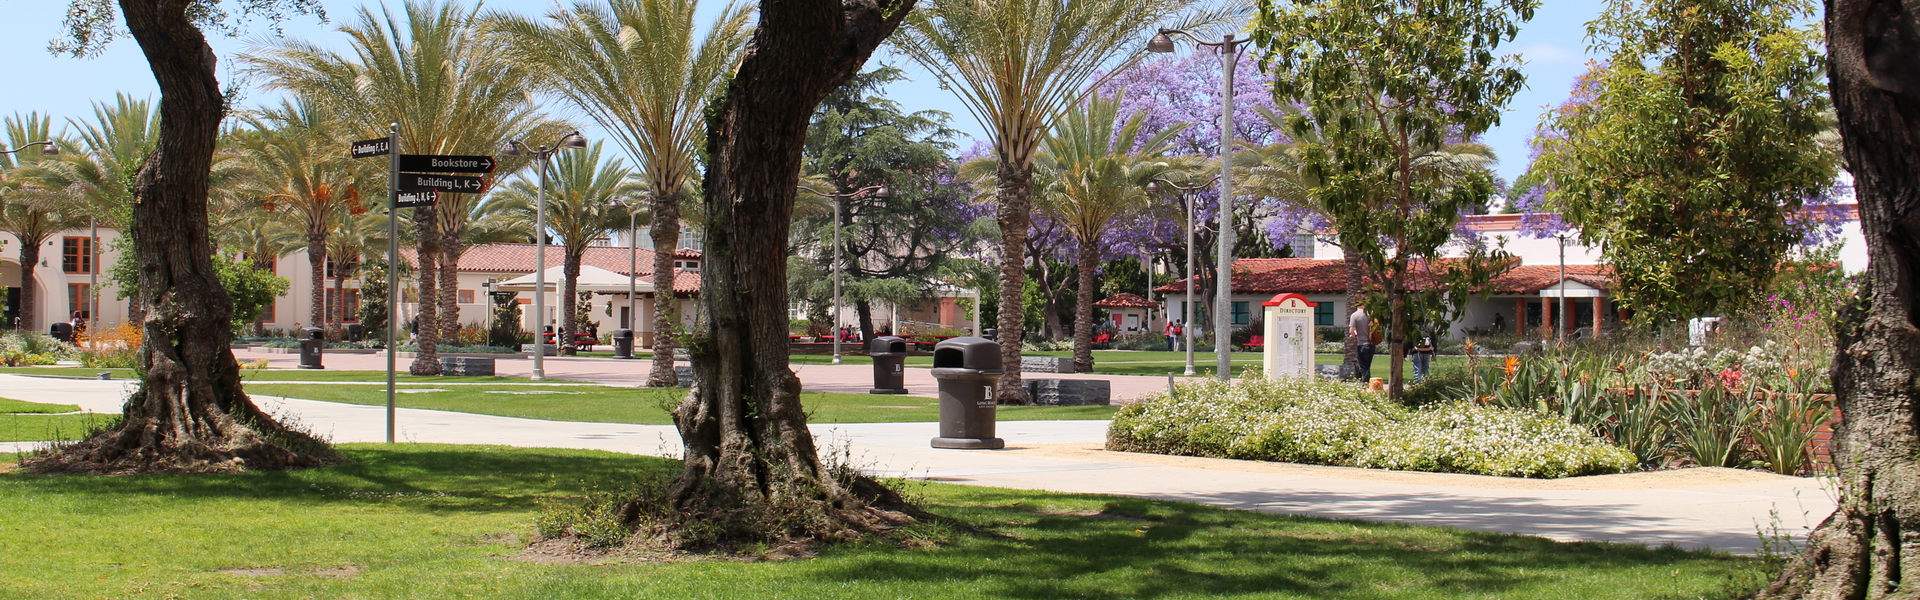 Lbcc Summer 2020.Admissions Records Long Beach City College